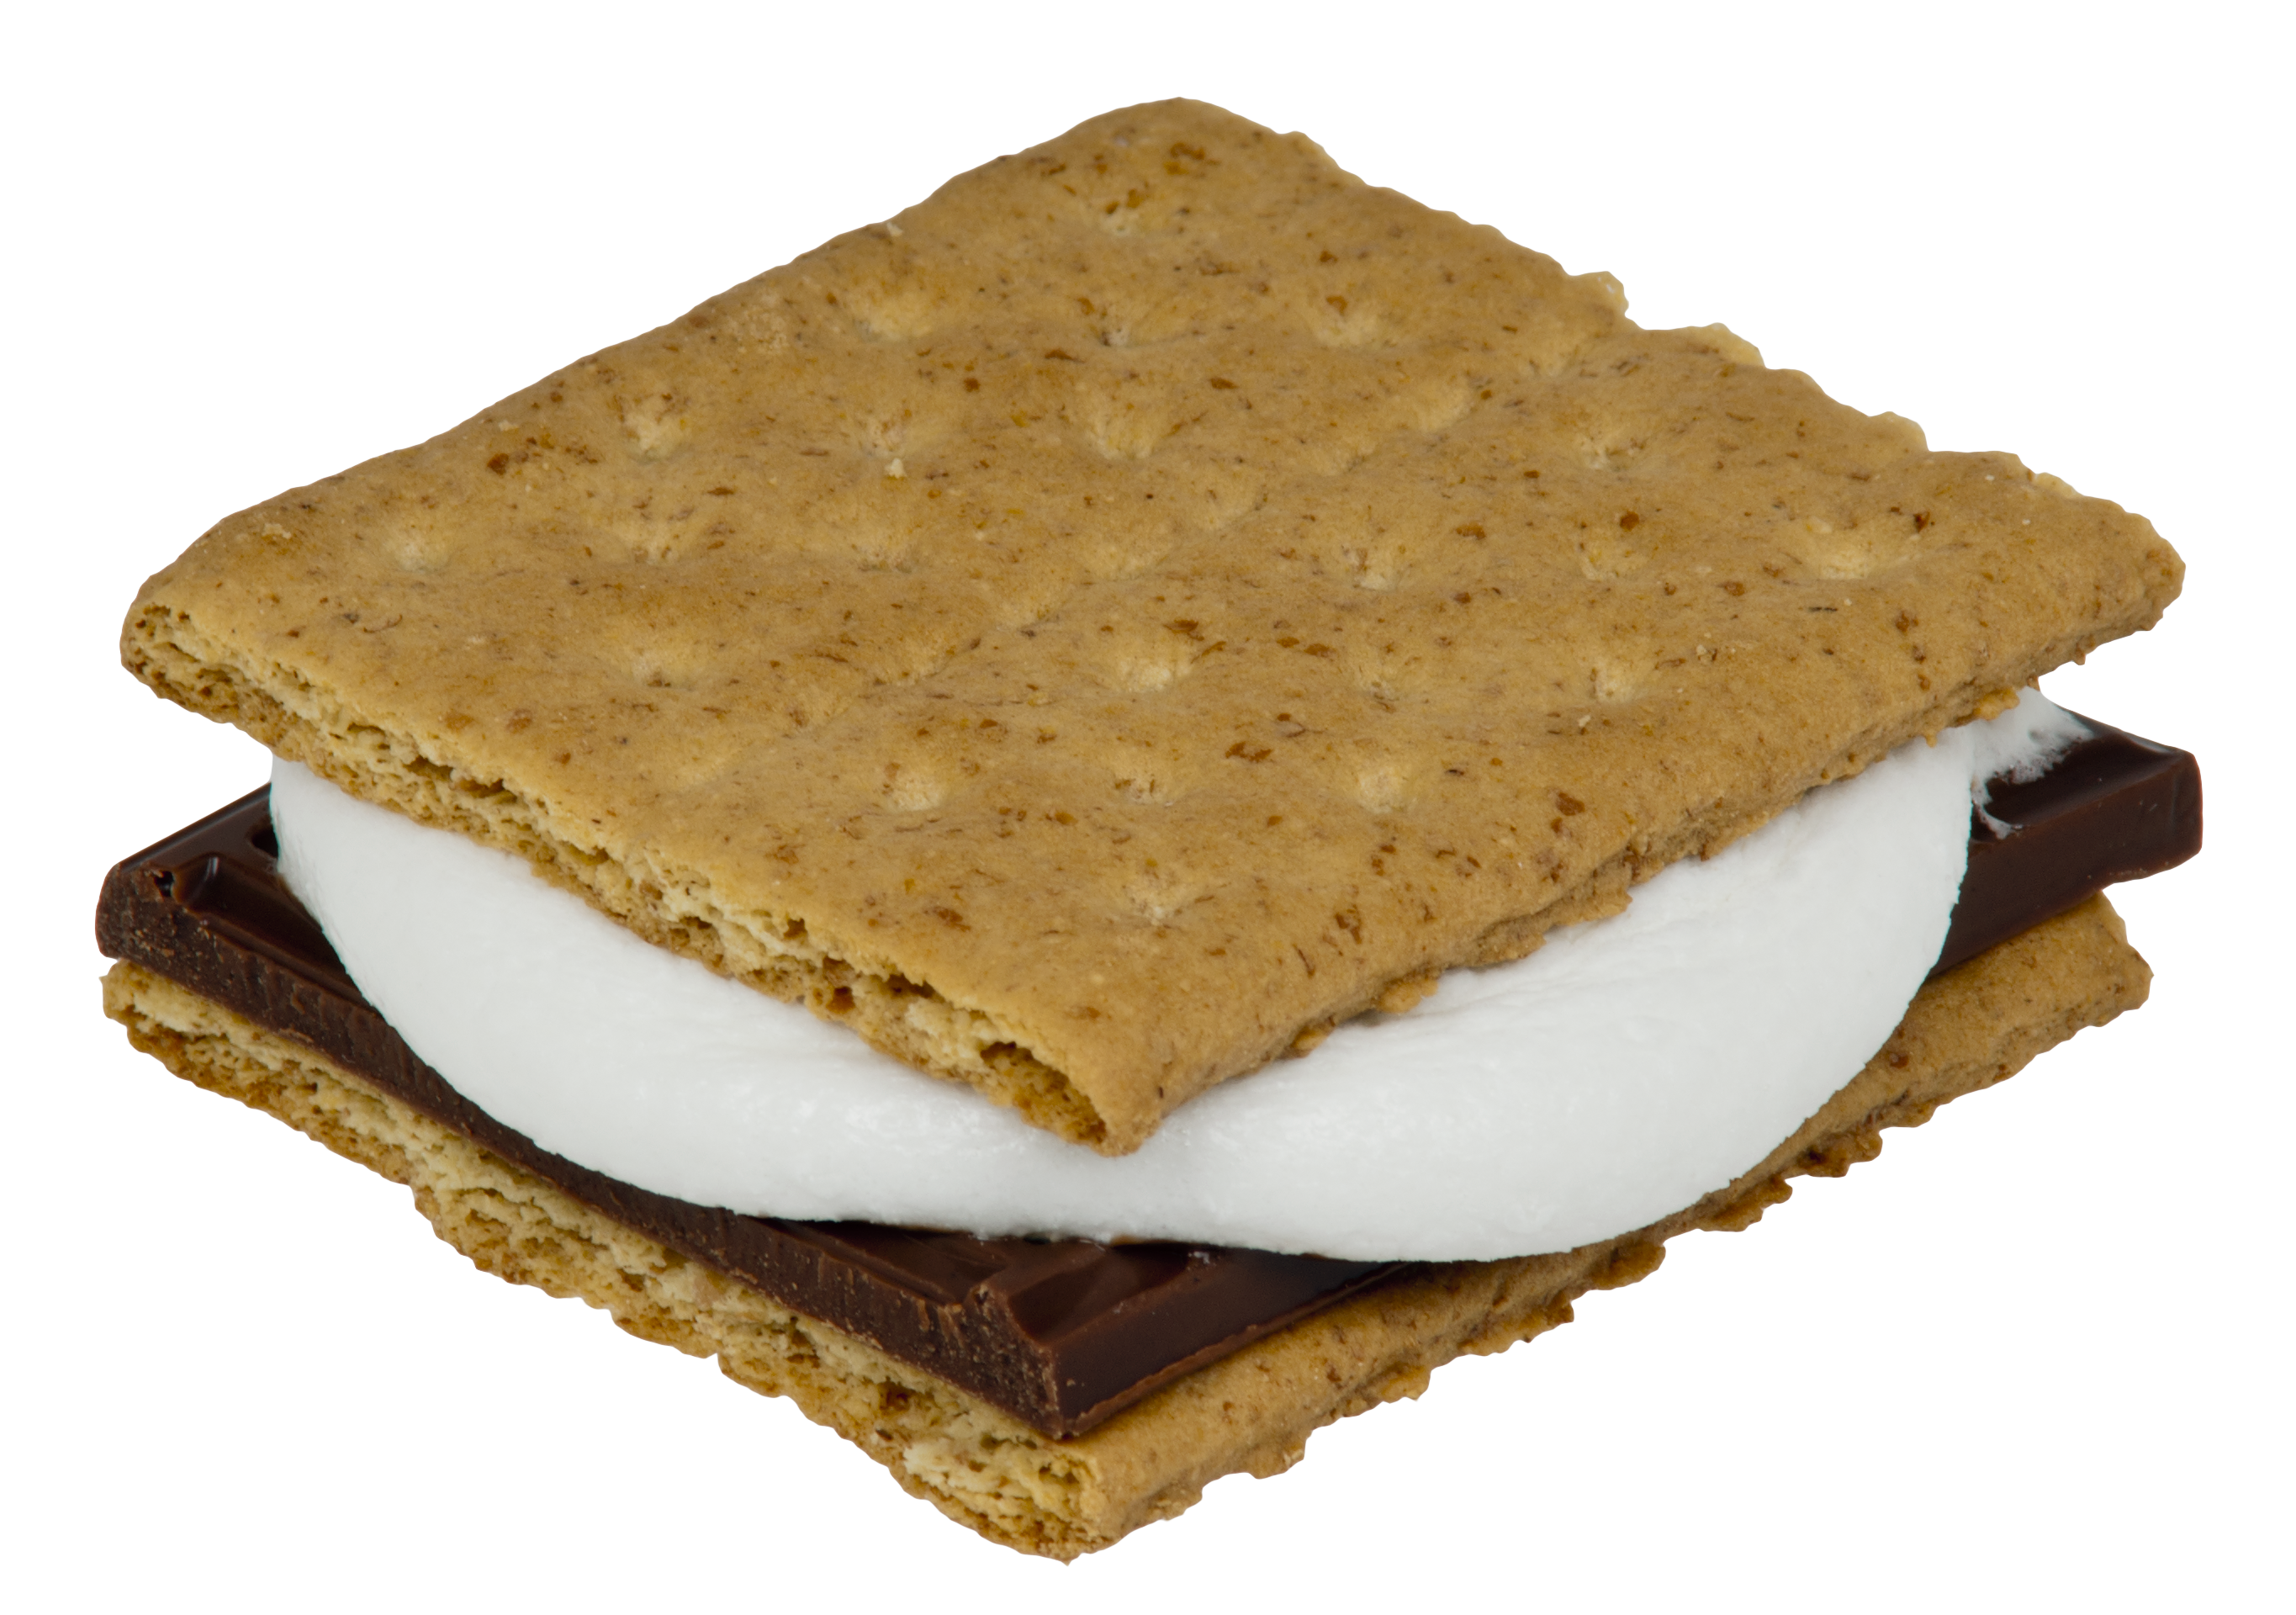 Smores-Microwave.png (2680×1900)